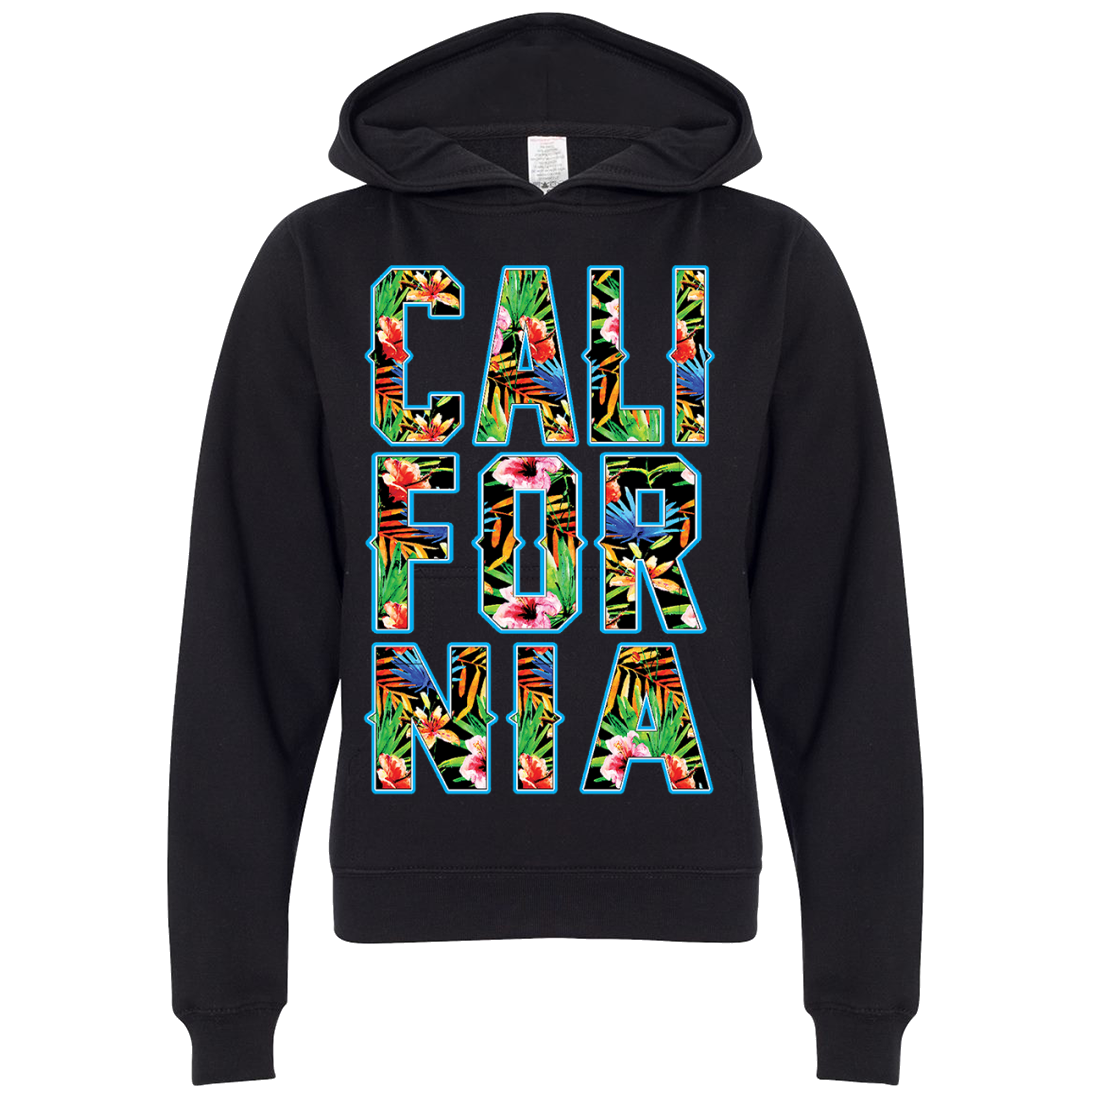 Tropical California Floral Print Premium Youth Sweatshirt Hoodie